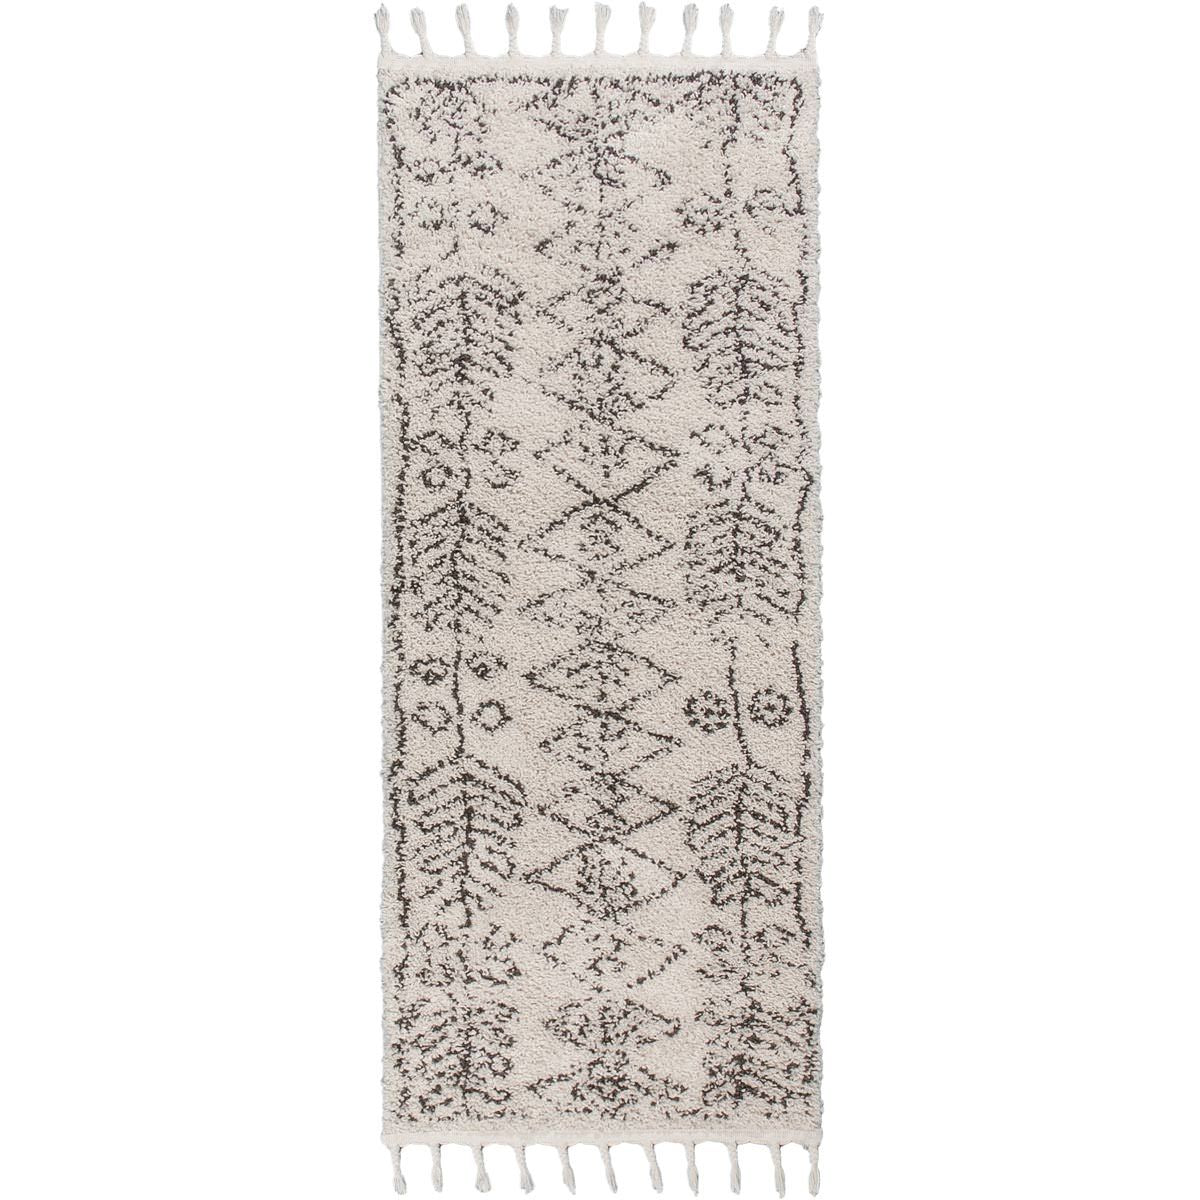 Shaggy Marrakech Rug 01 Cream/Black Runner 1